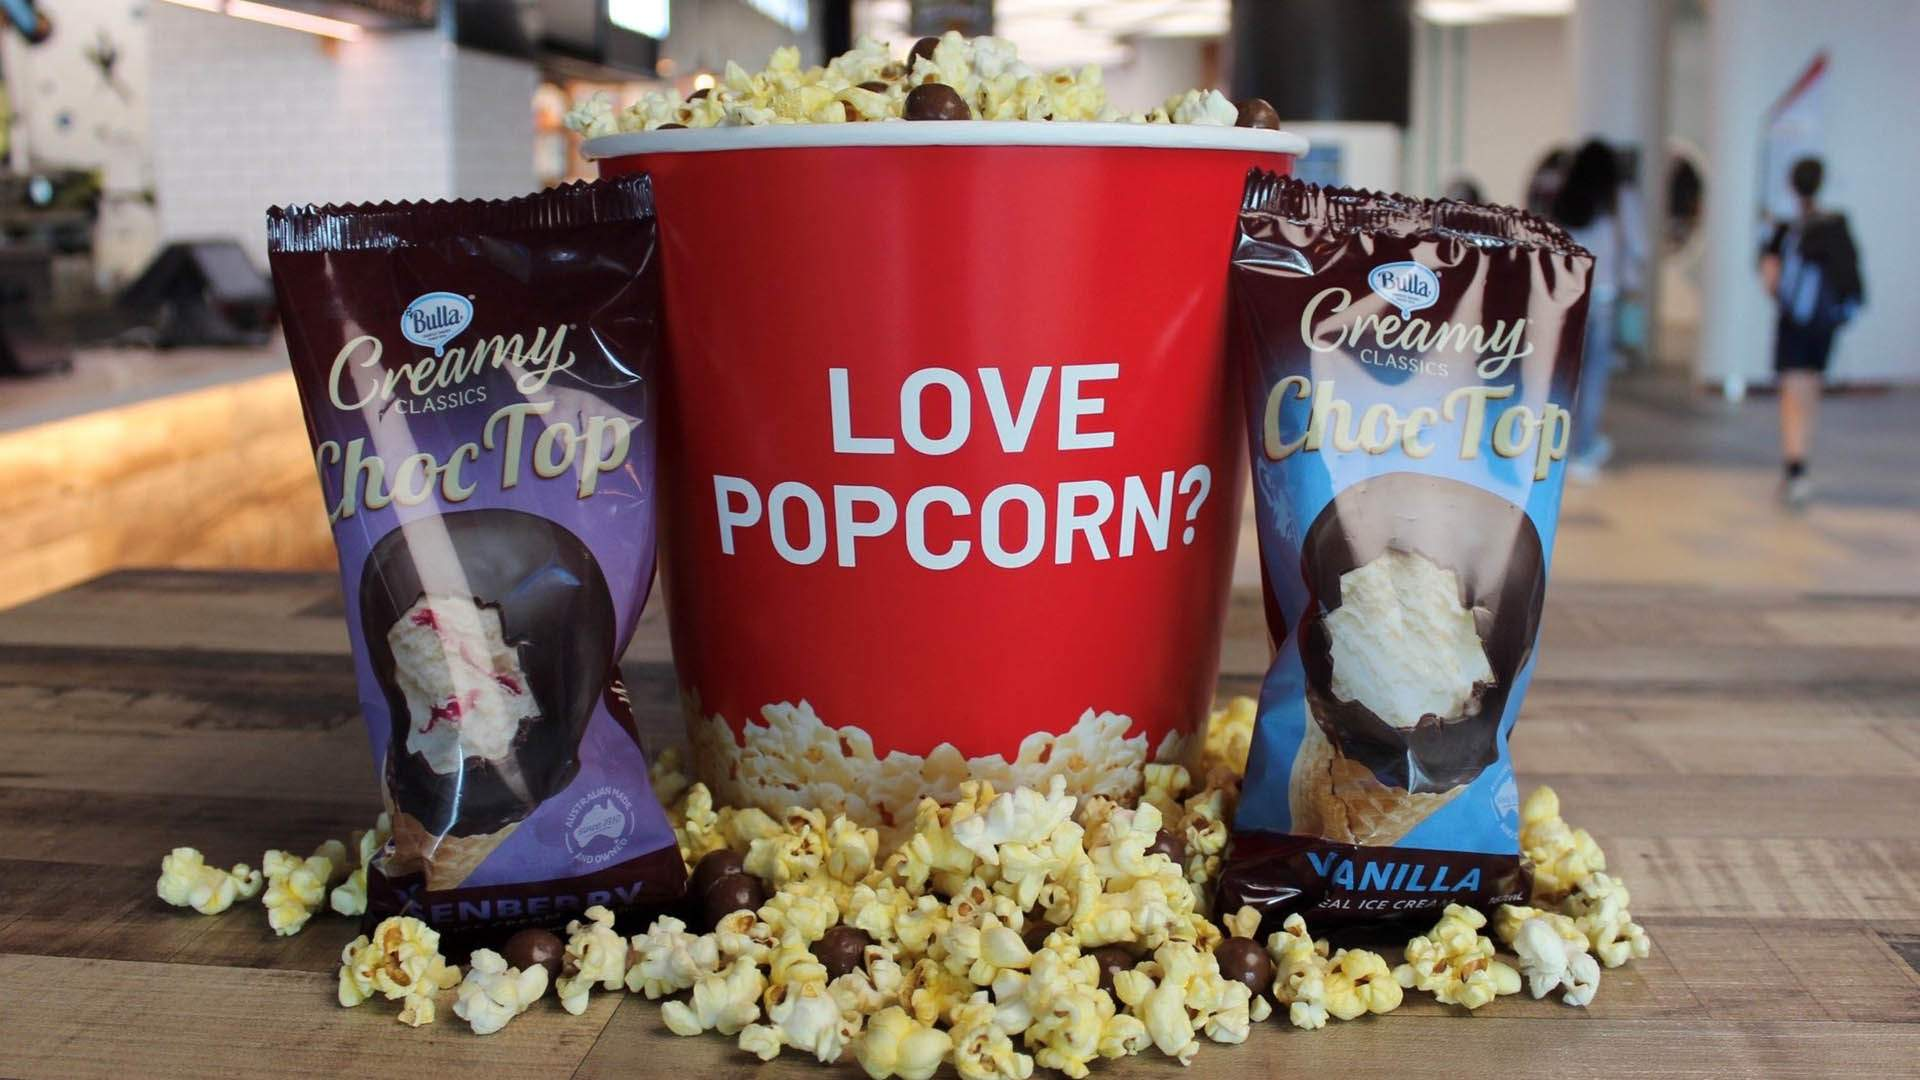 Hoyts Is Delivering Popcorn and Choc Tops So You Can Pair Your Home Viewing with Cinema Snacks